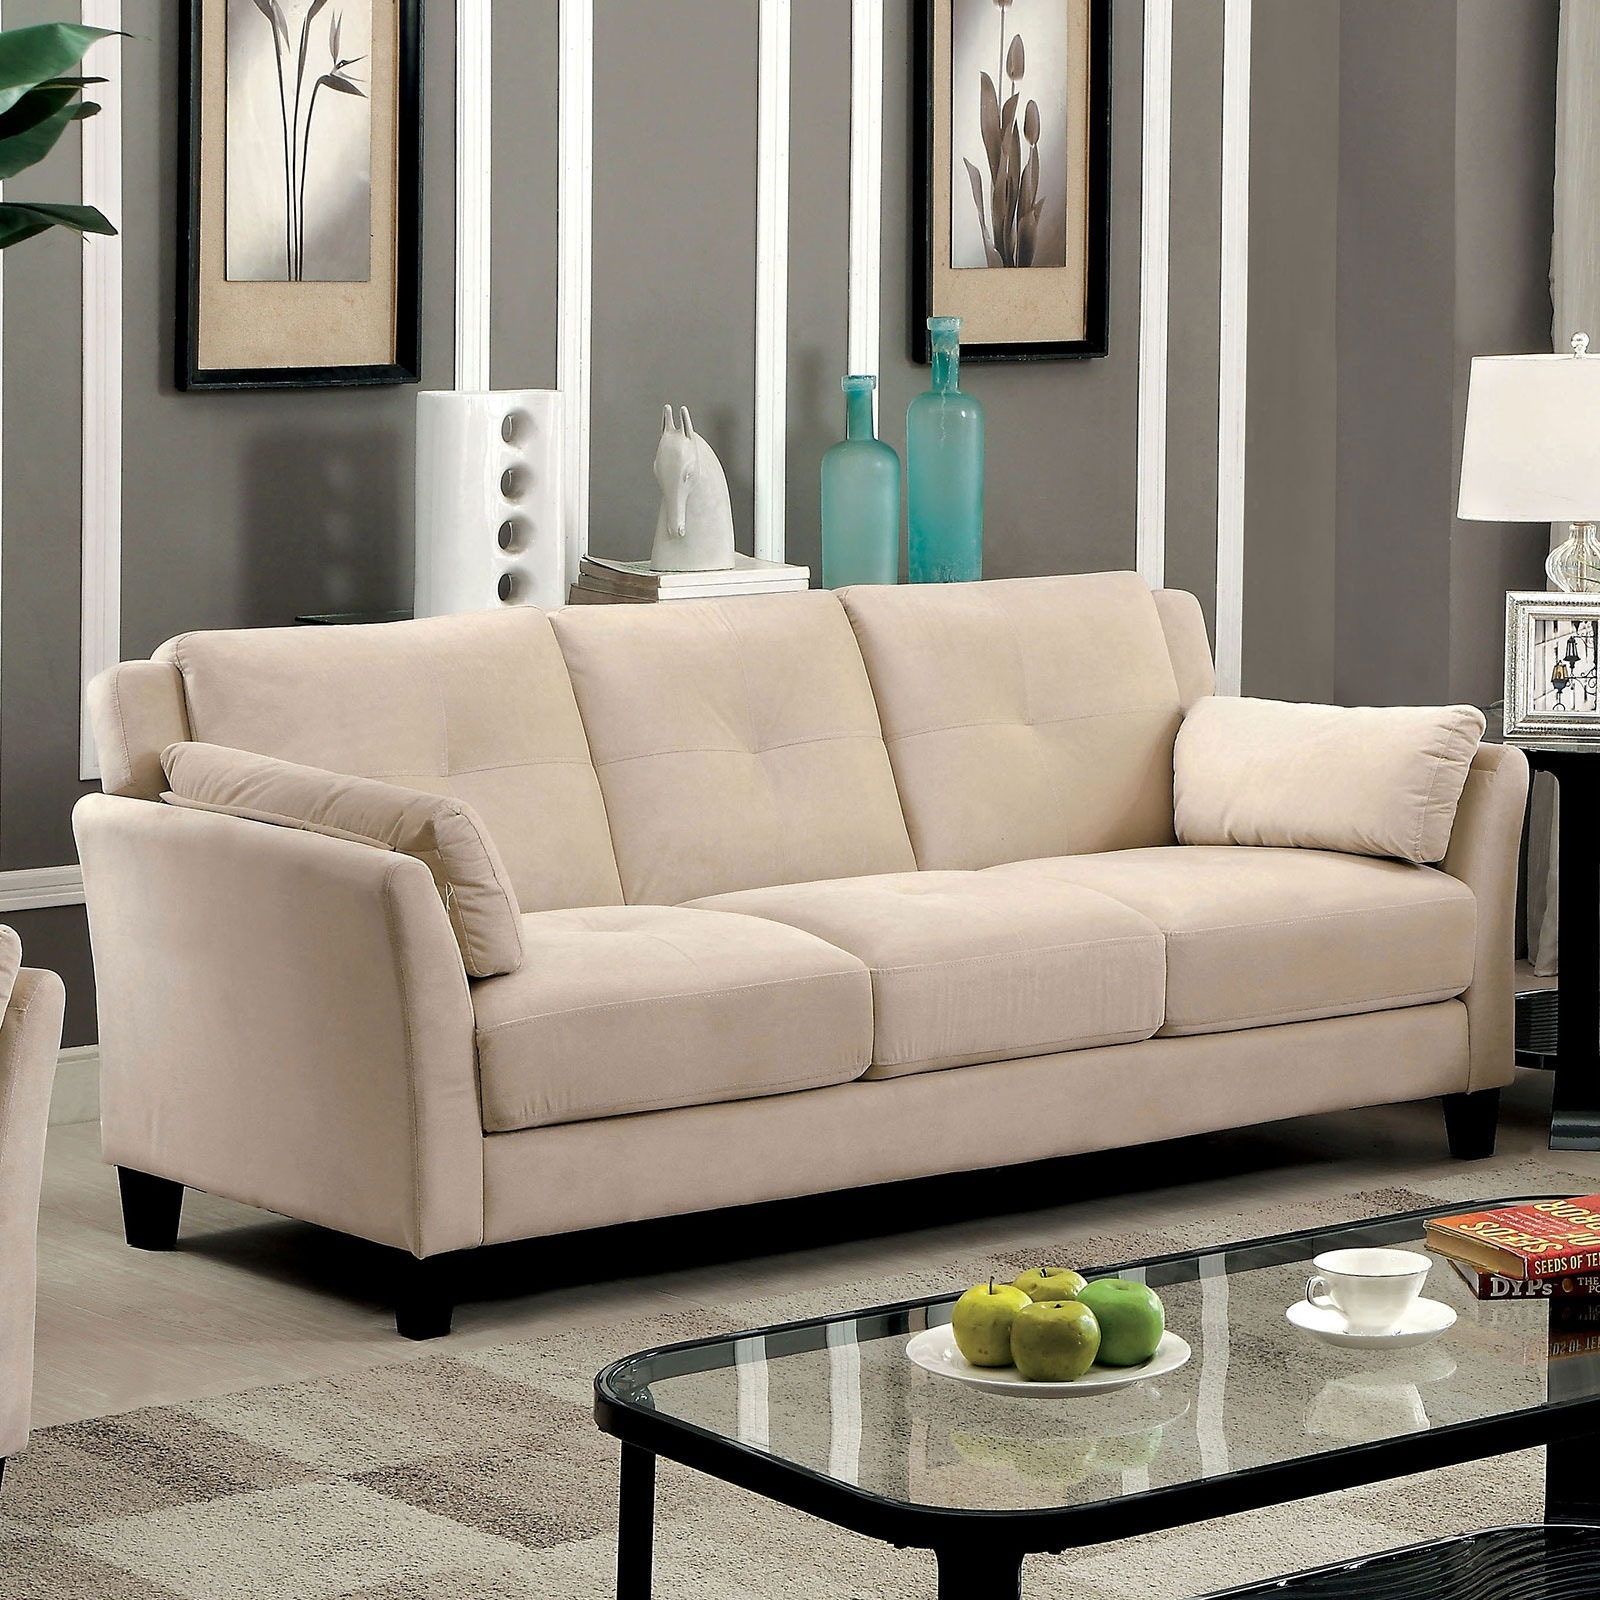 Add Charm Living Room Sets Furniture of America Living Room Sofa, Beige CM6716BG-SF-PK at Simply  Discount Furniture. Add some modern charm ...